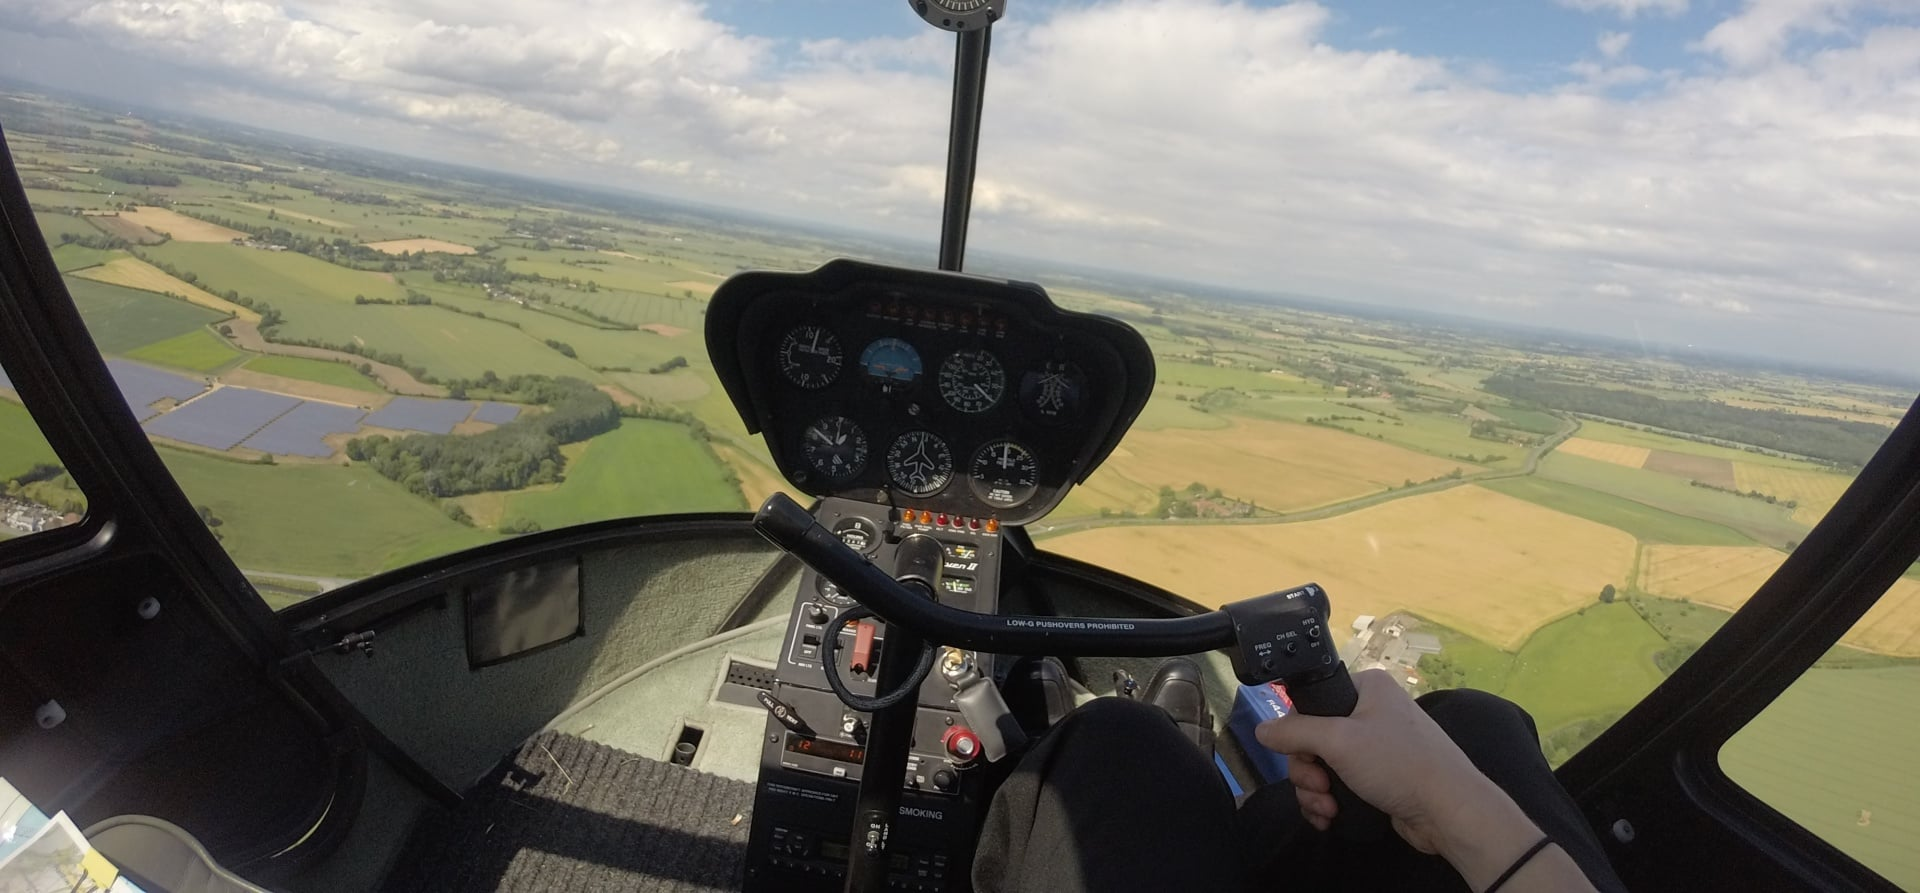 Emmerdale Helicopter Sightseeing Tour In Yorkshire